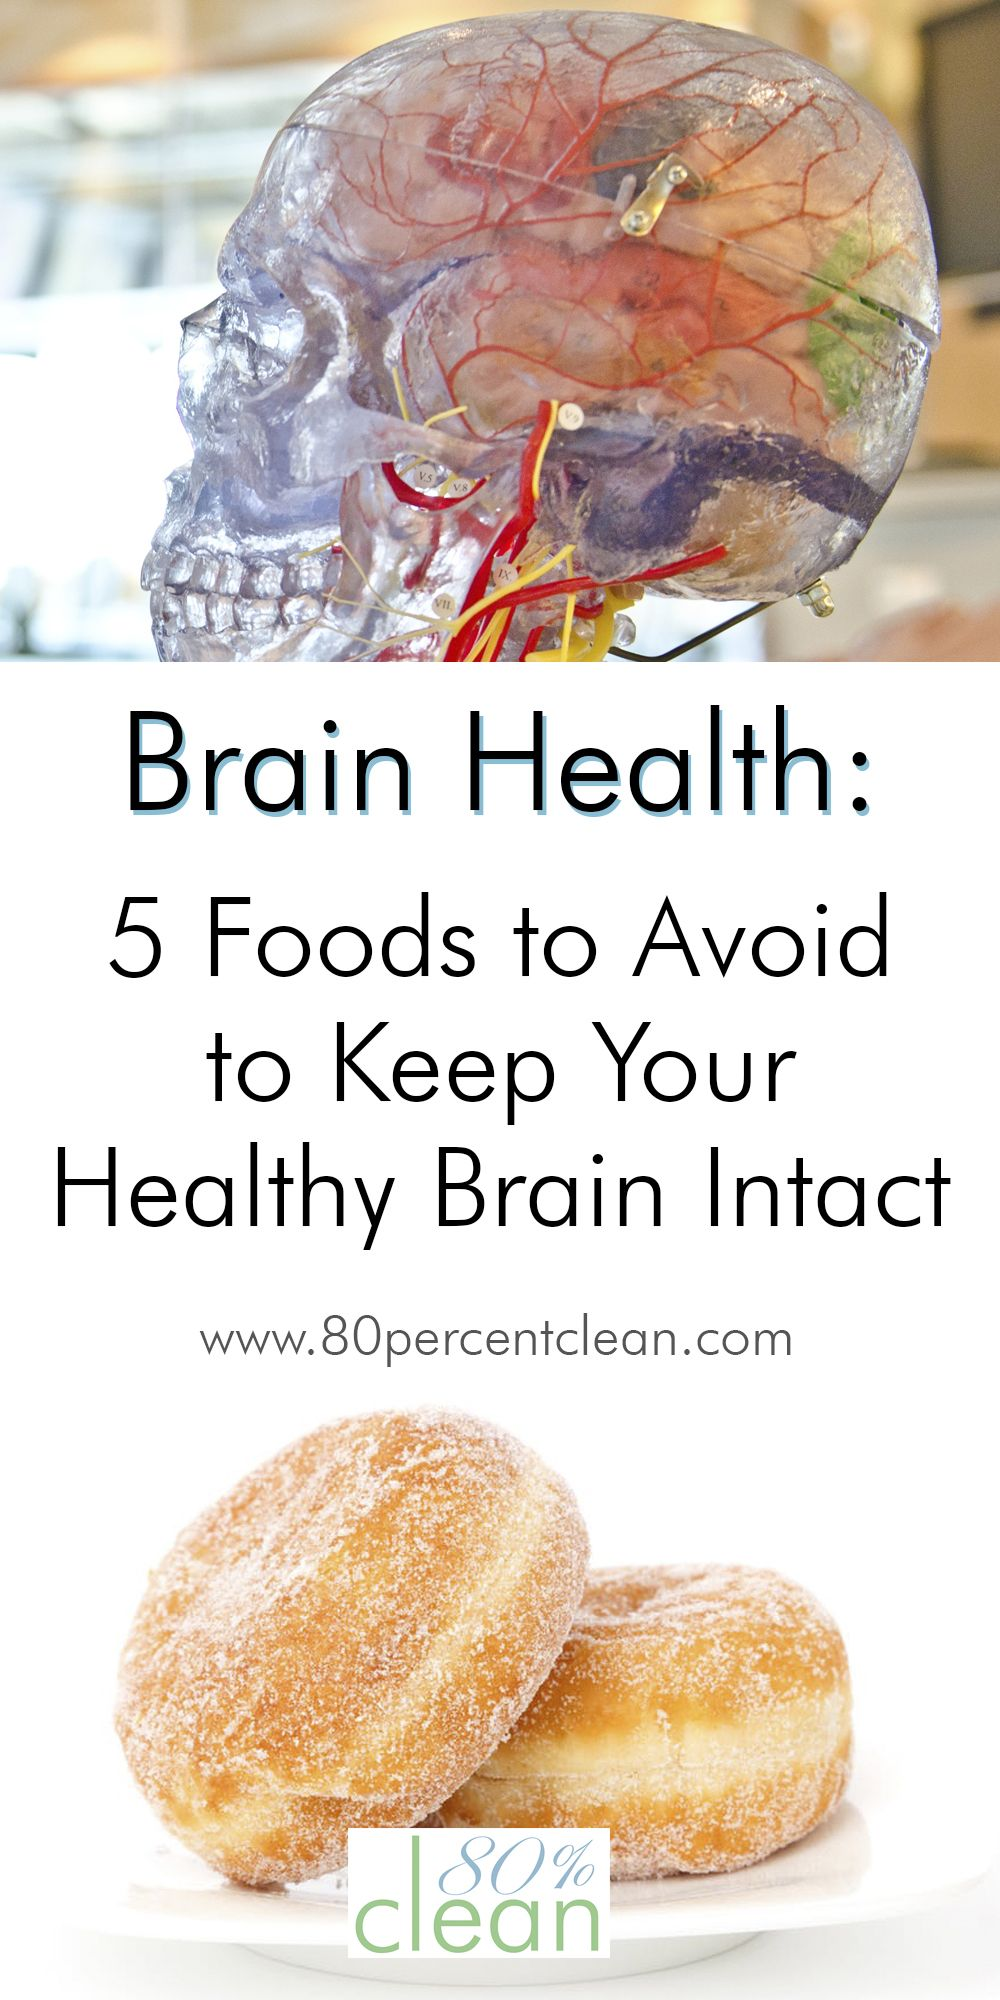 Want to keep your brain as sharp as possible? Worried about your long-term brain health? Avoid these 5 foods to keep your healthy brain intact.